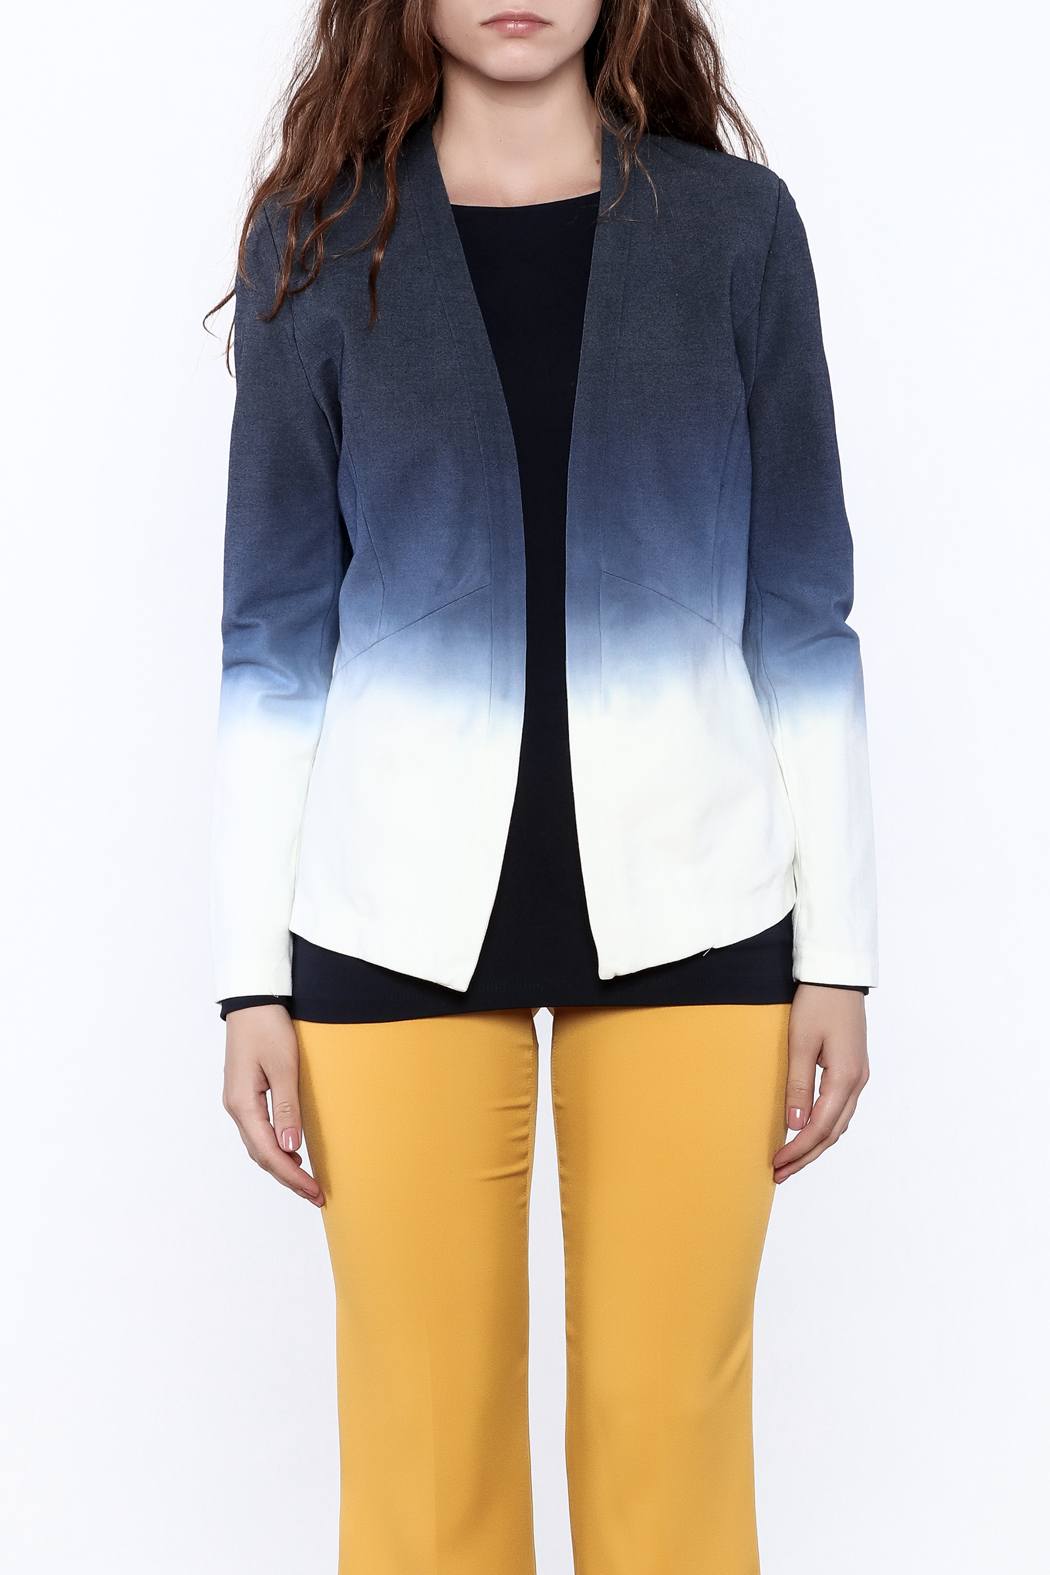 Tart Collections Annabella Blazer - Side Cropped Image